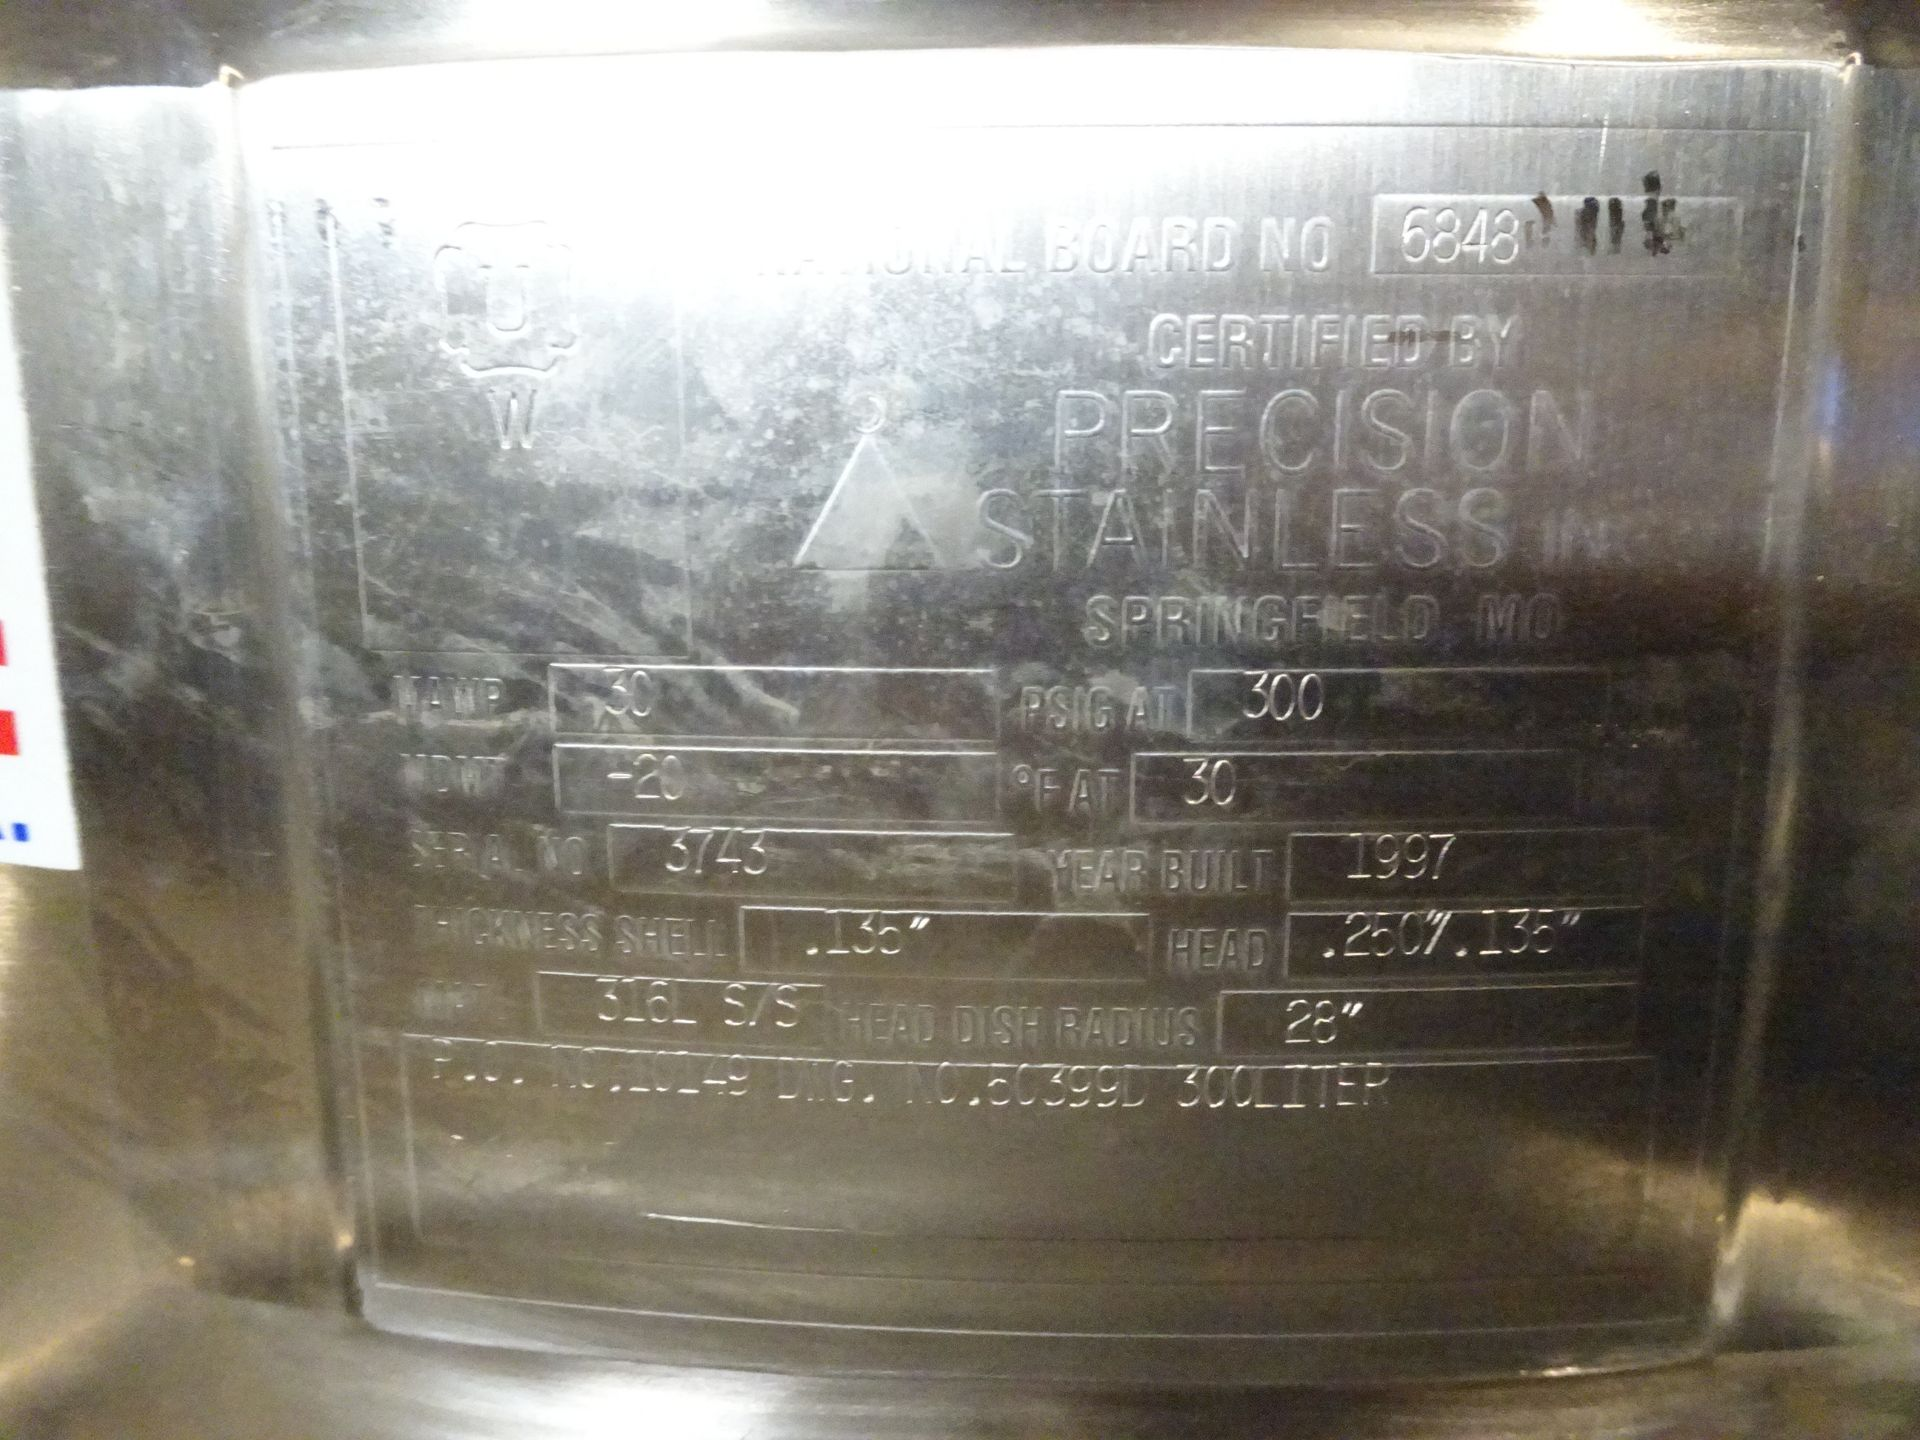 Lot 30 - Precision Stainless 60 Gallon 316L Stainless Steel Jacketed Tank